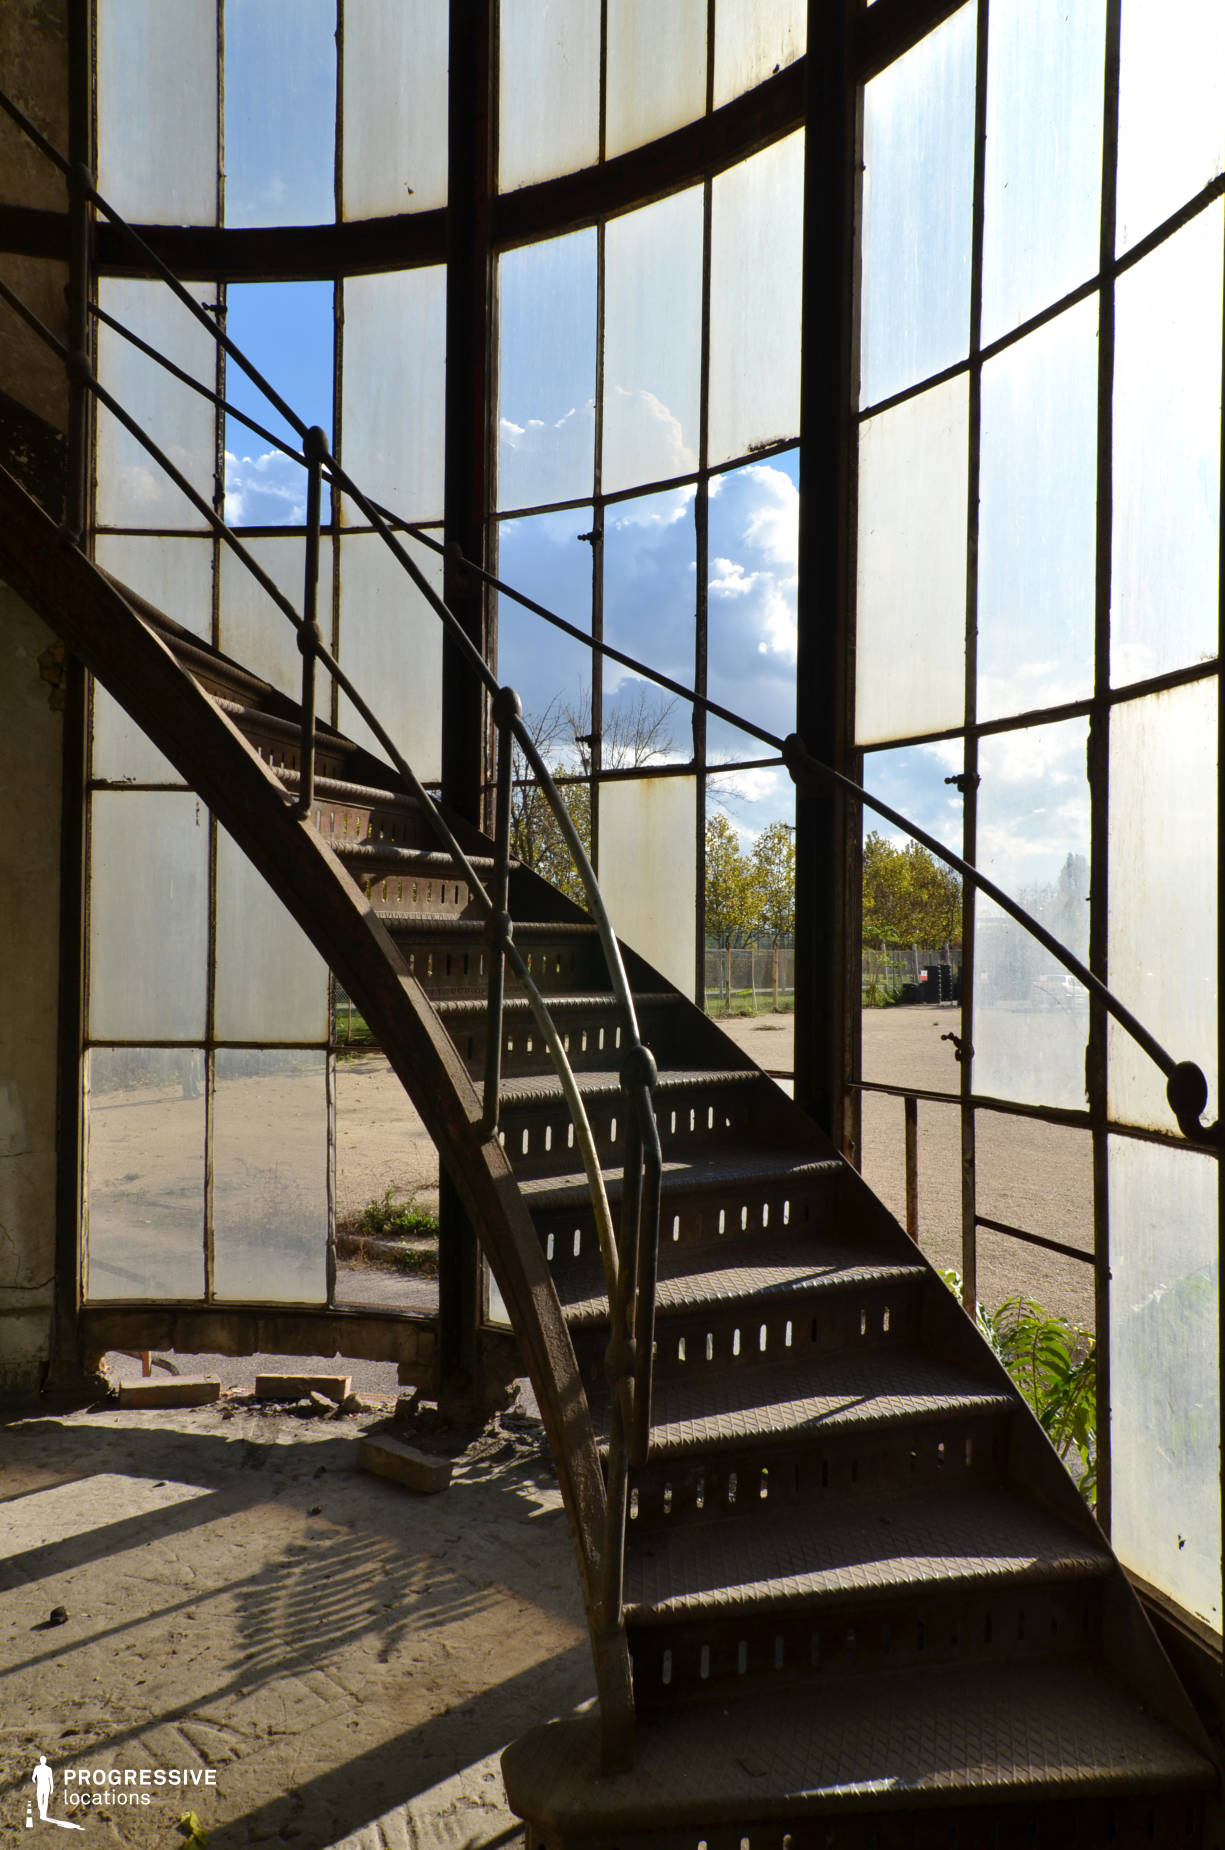 Locations in Hungary: Shabby Iron Staircase, Power Plant, Kelenfold